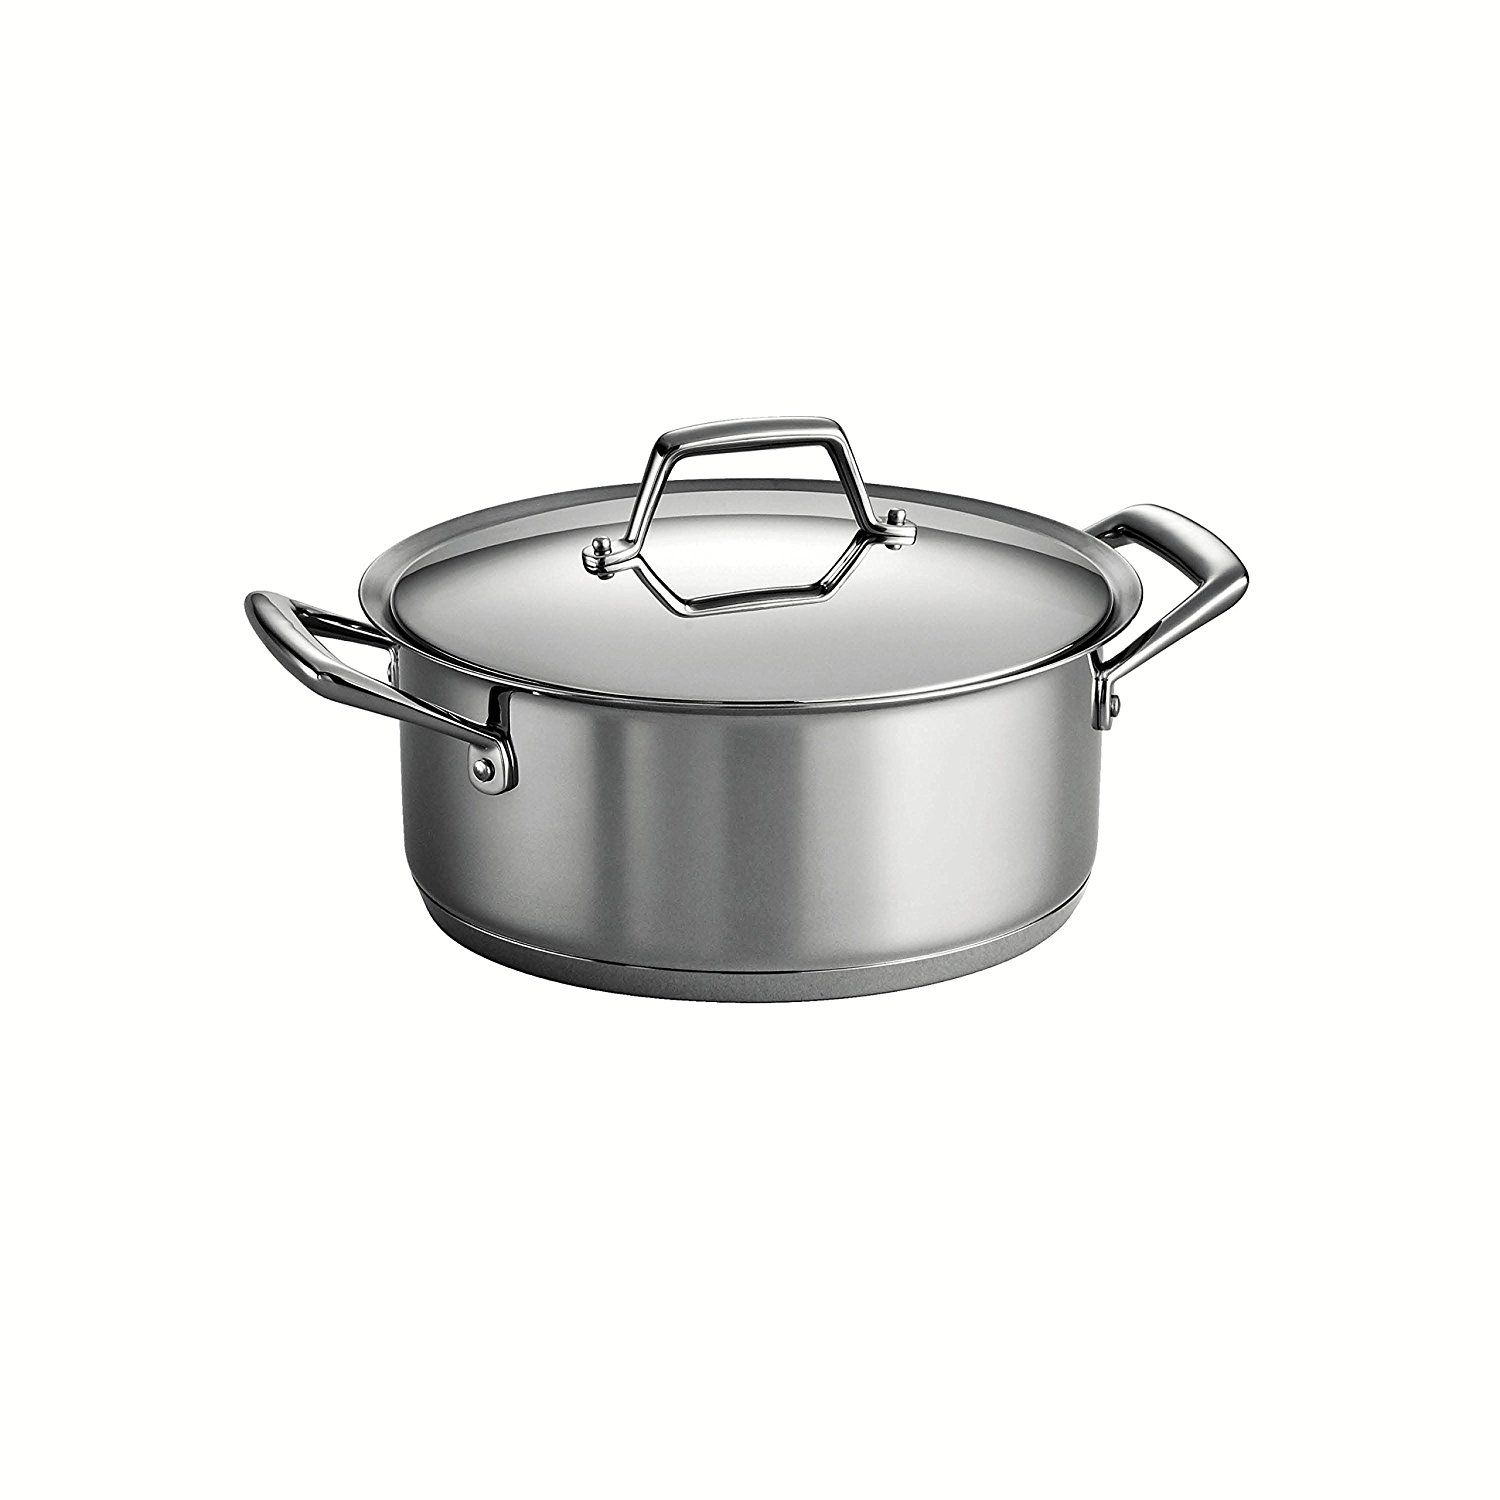 Tramontina Gourmet Prima 18/10 Stainless Steel Tri-Ply Base Covered Sauce Pot, 6-Quart, Silver ** You can find out more details at the link of the image.